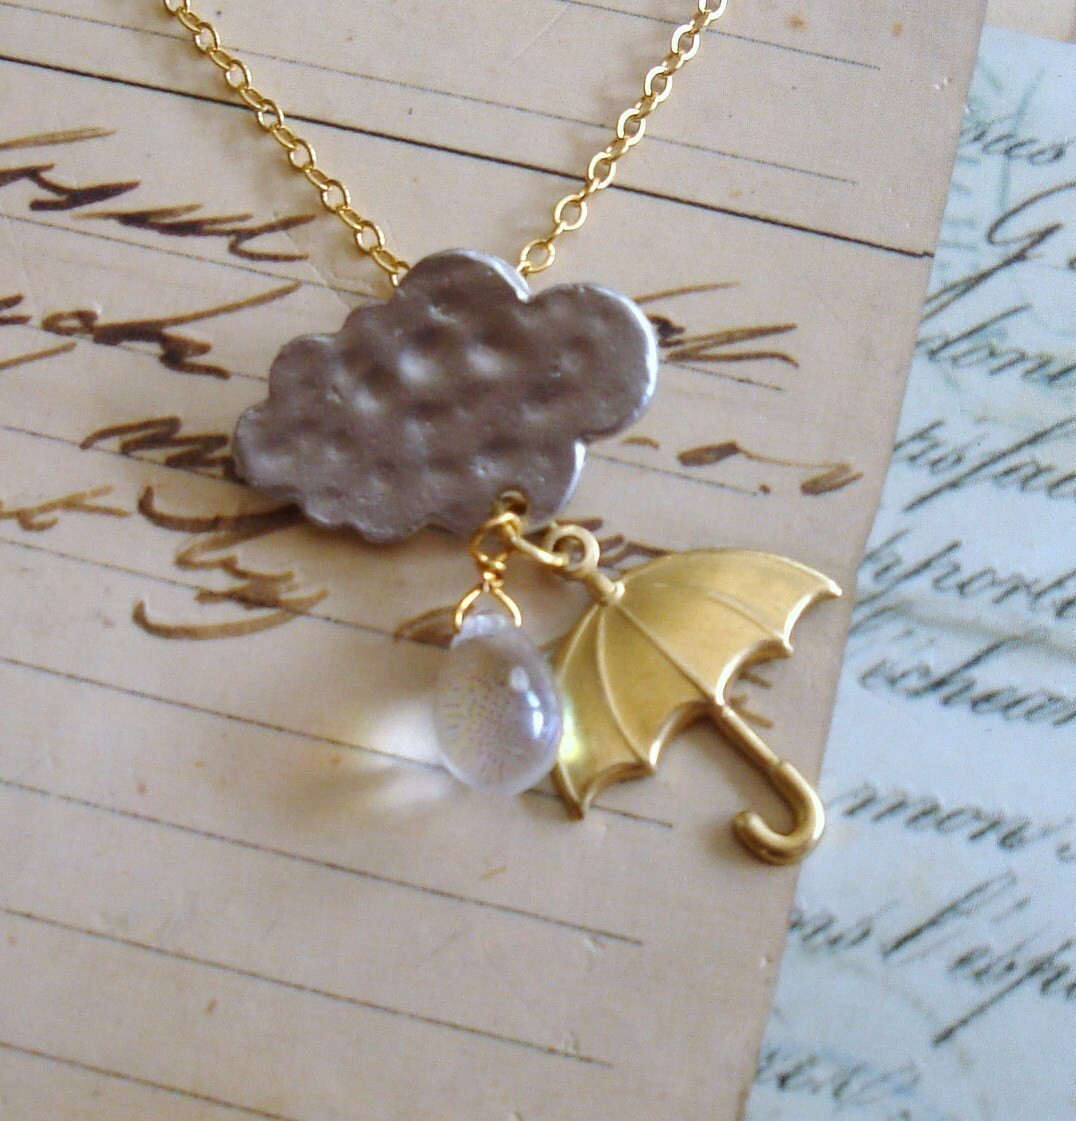 Rain Cloud with Umbrella Necklace. FREE WORLDWIDE SHIPPING.